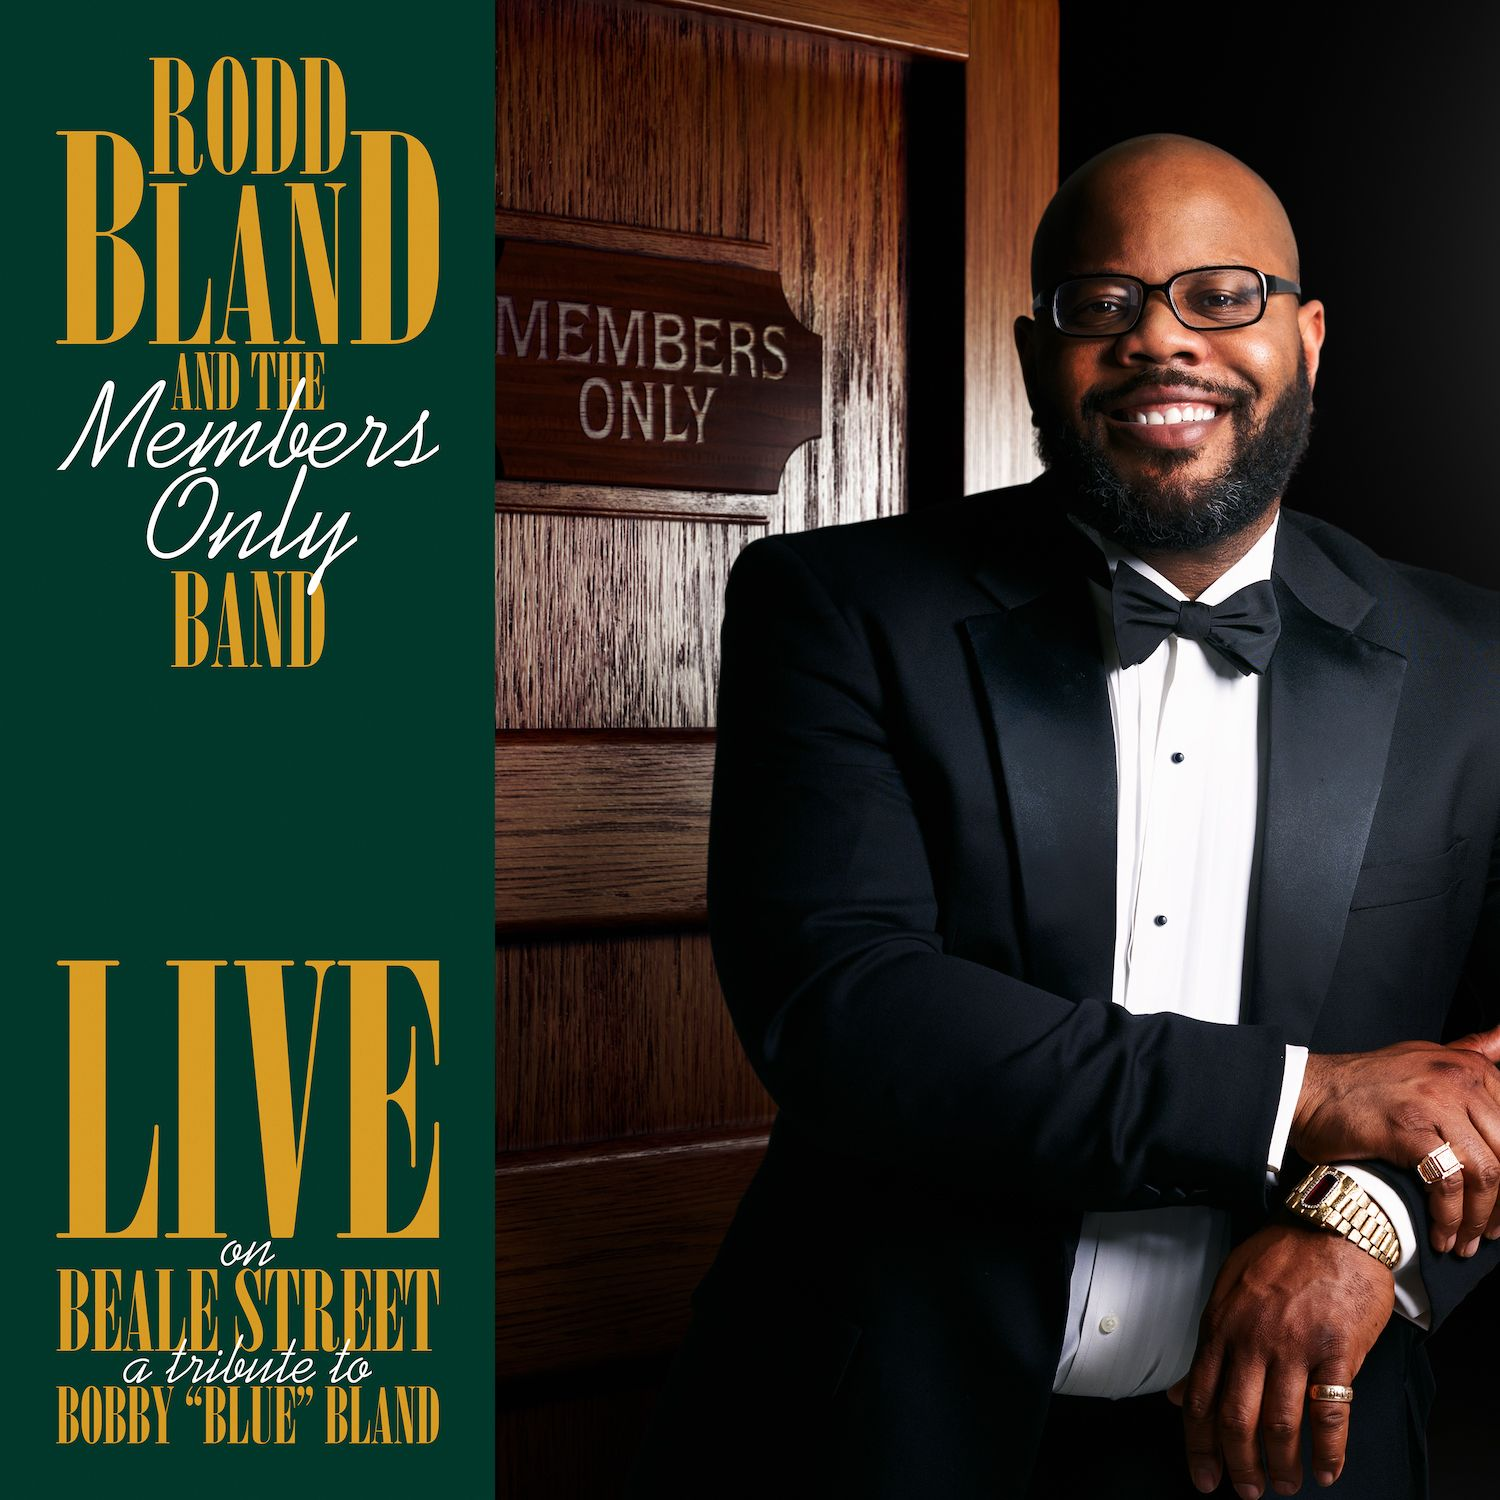 Rodd Bland & the Members Only Band - Sittin' On A Poor Man's Throne